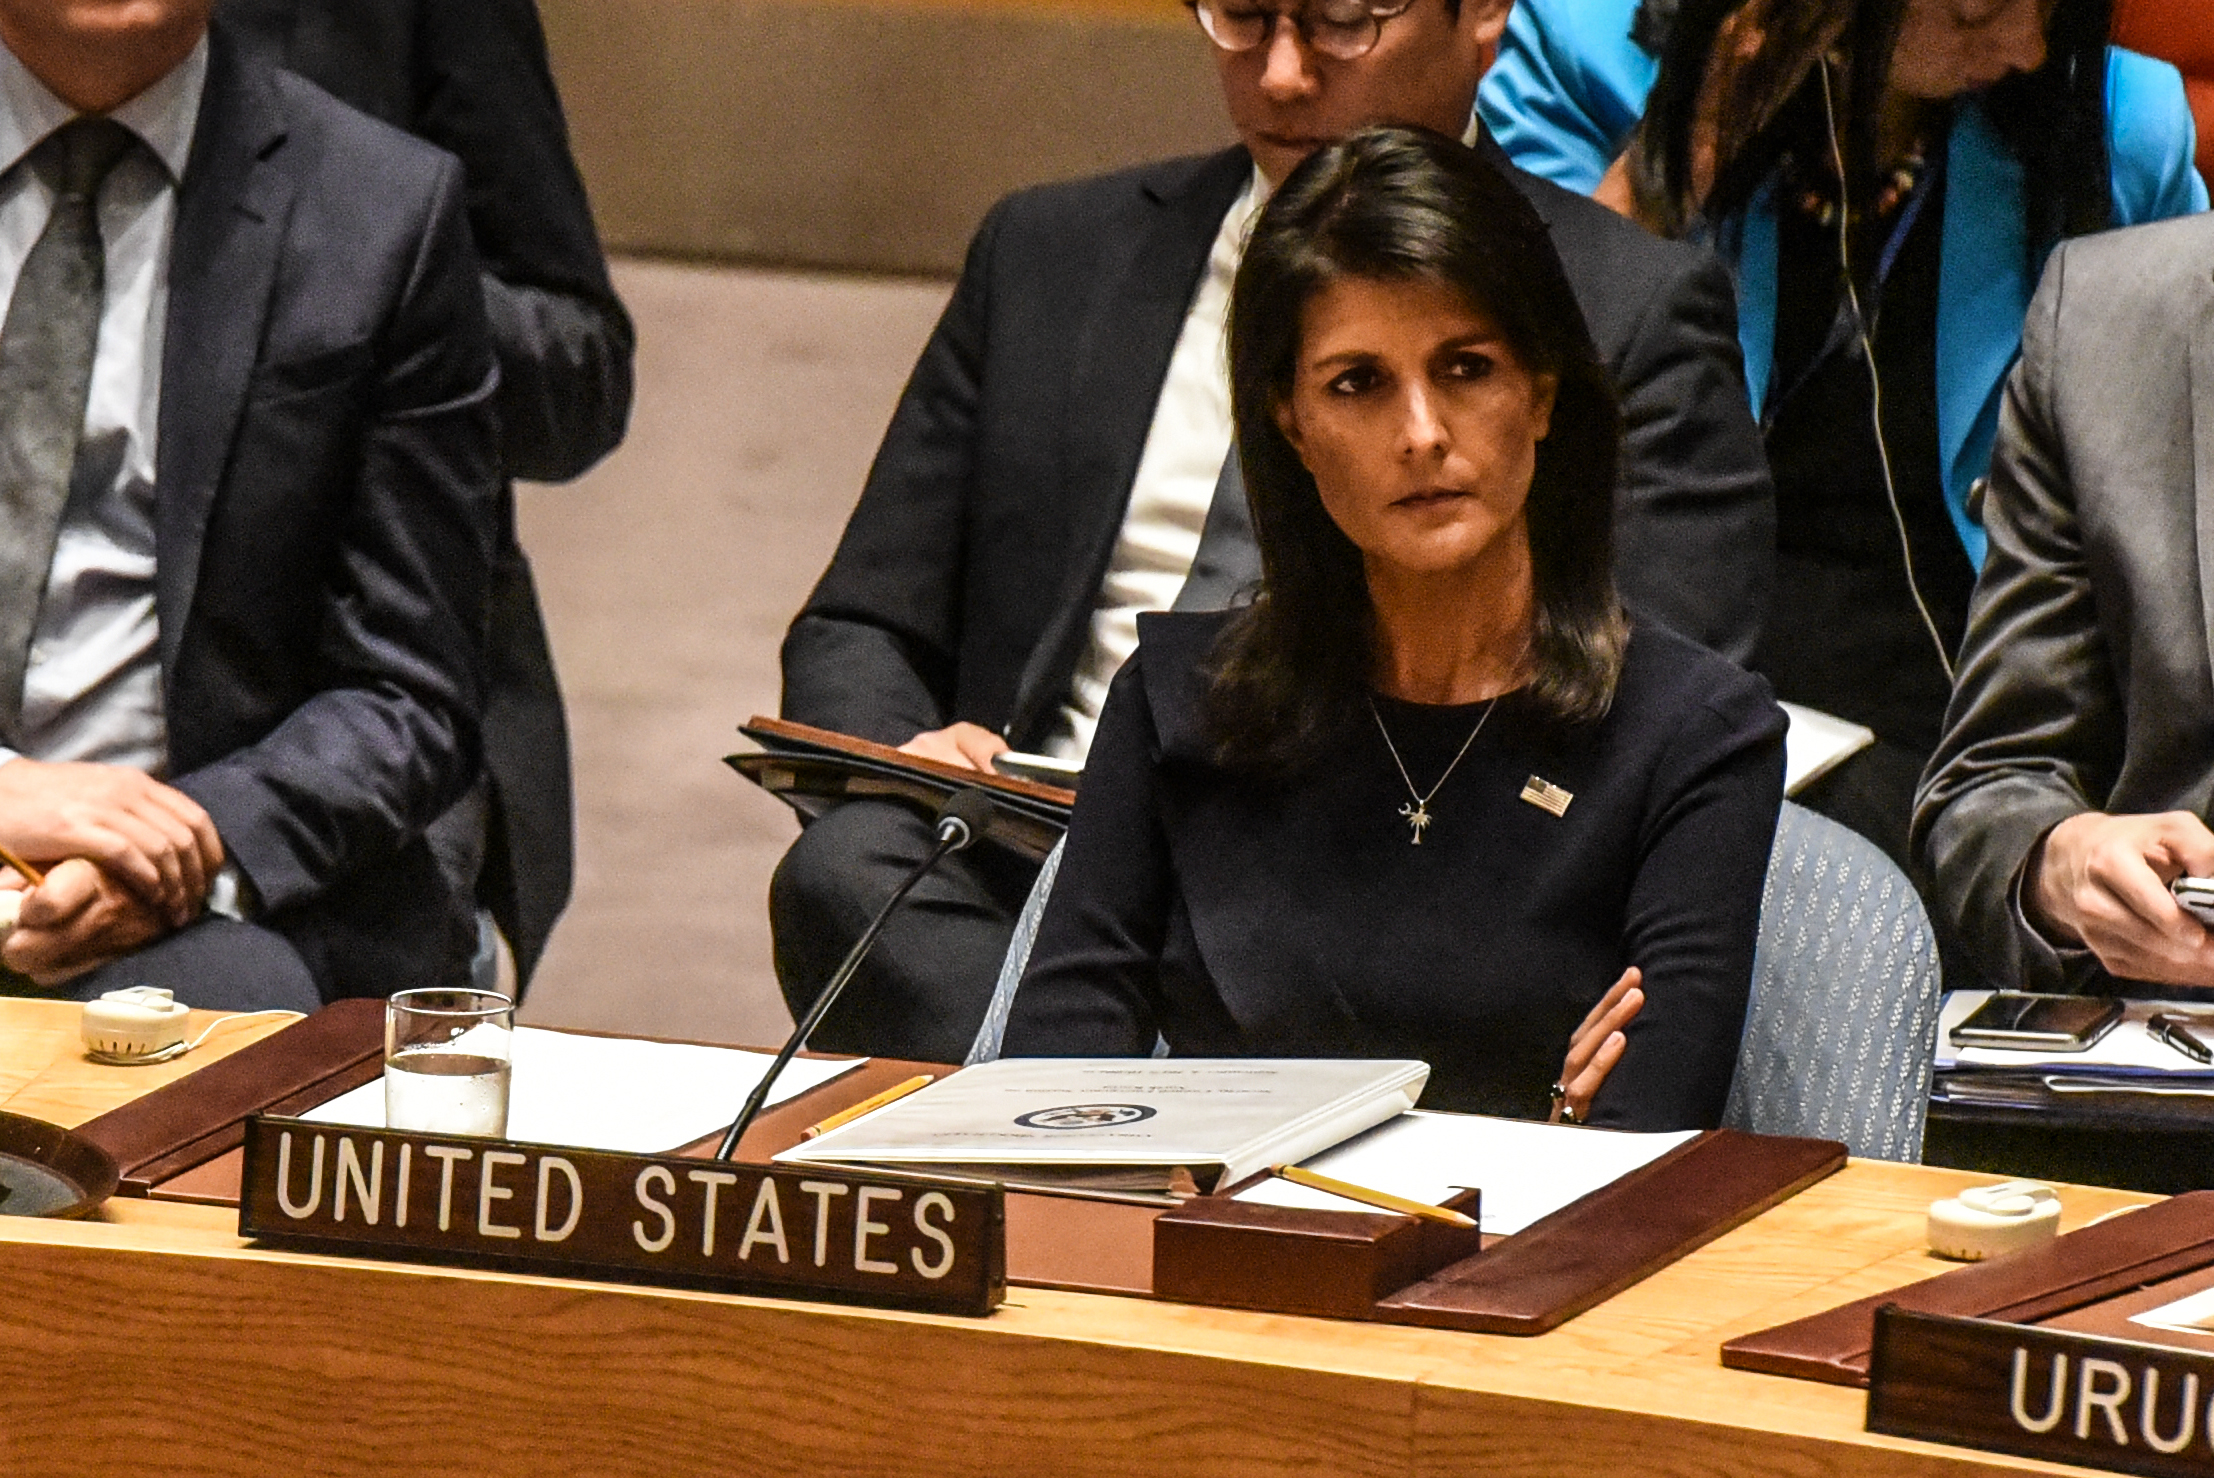 U.S. Ambassador to the UN Nikki Haley listens to remarks during a United Nations Security Council meeting on North Korea on September 4, 2017 in New York City.